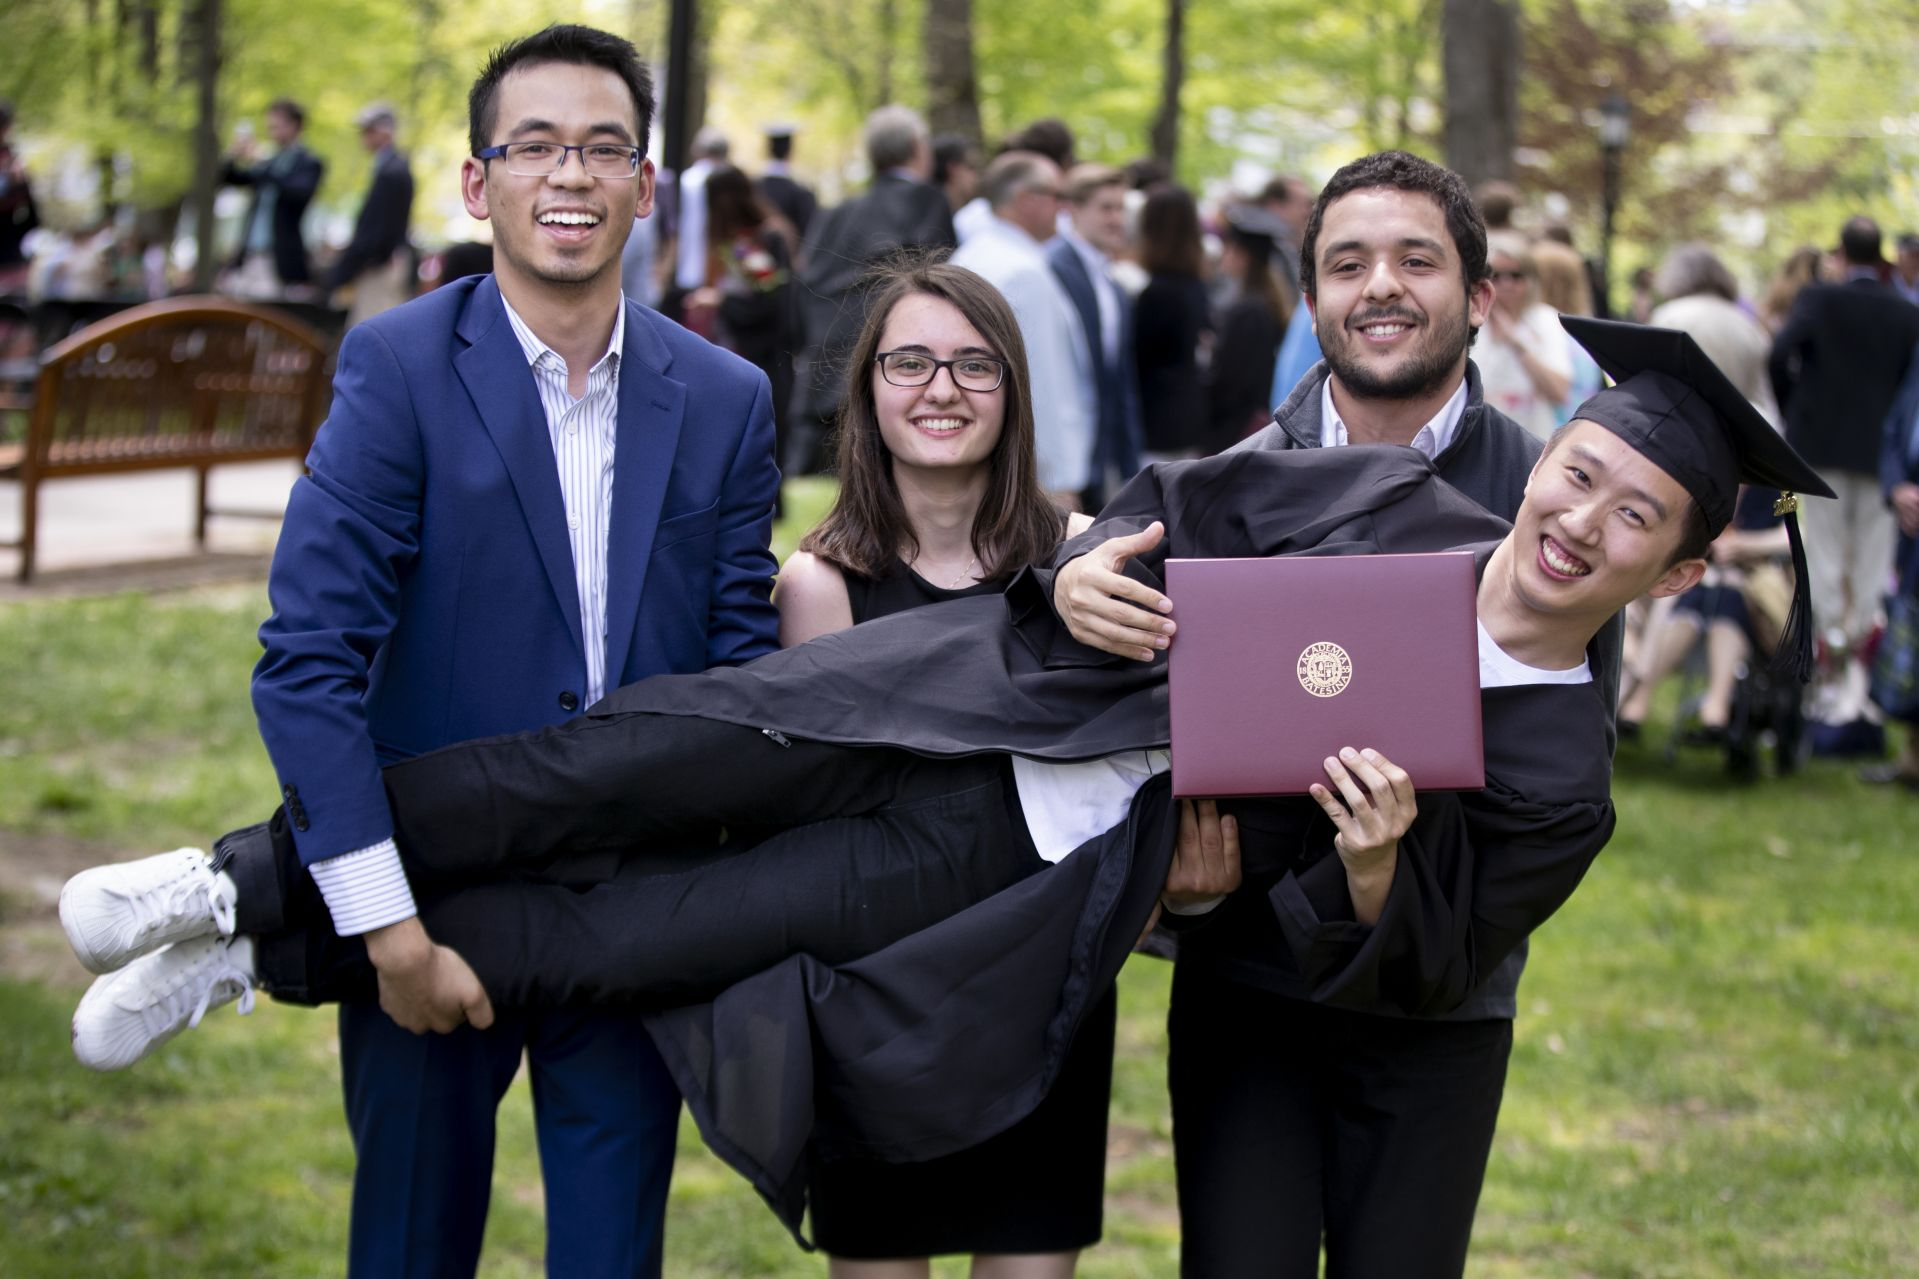 Max Huang '19, who graduated summa cum laude as a triple major in math, economics and physics, is held up by (from left) Deepsing Syangtan, Maria-Anna Chrysovergi, and Salim Ourari, all '18. (Phyllis Graber Jensen/Bates College)